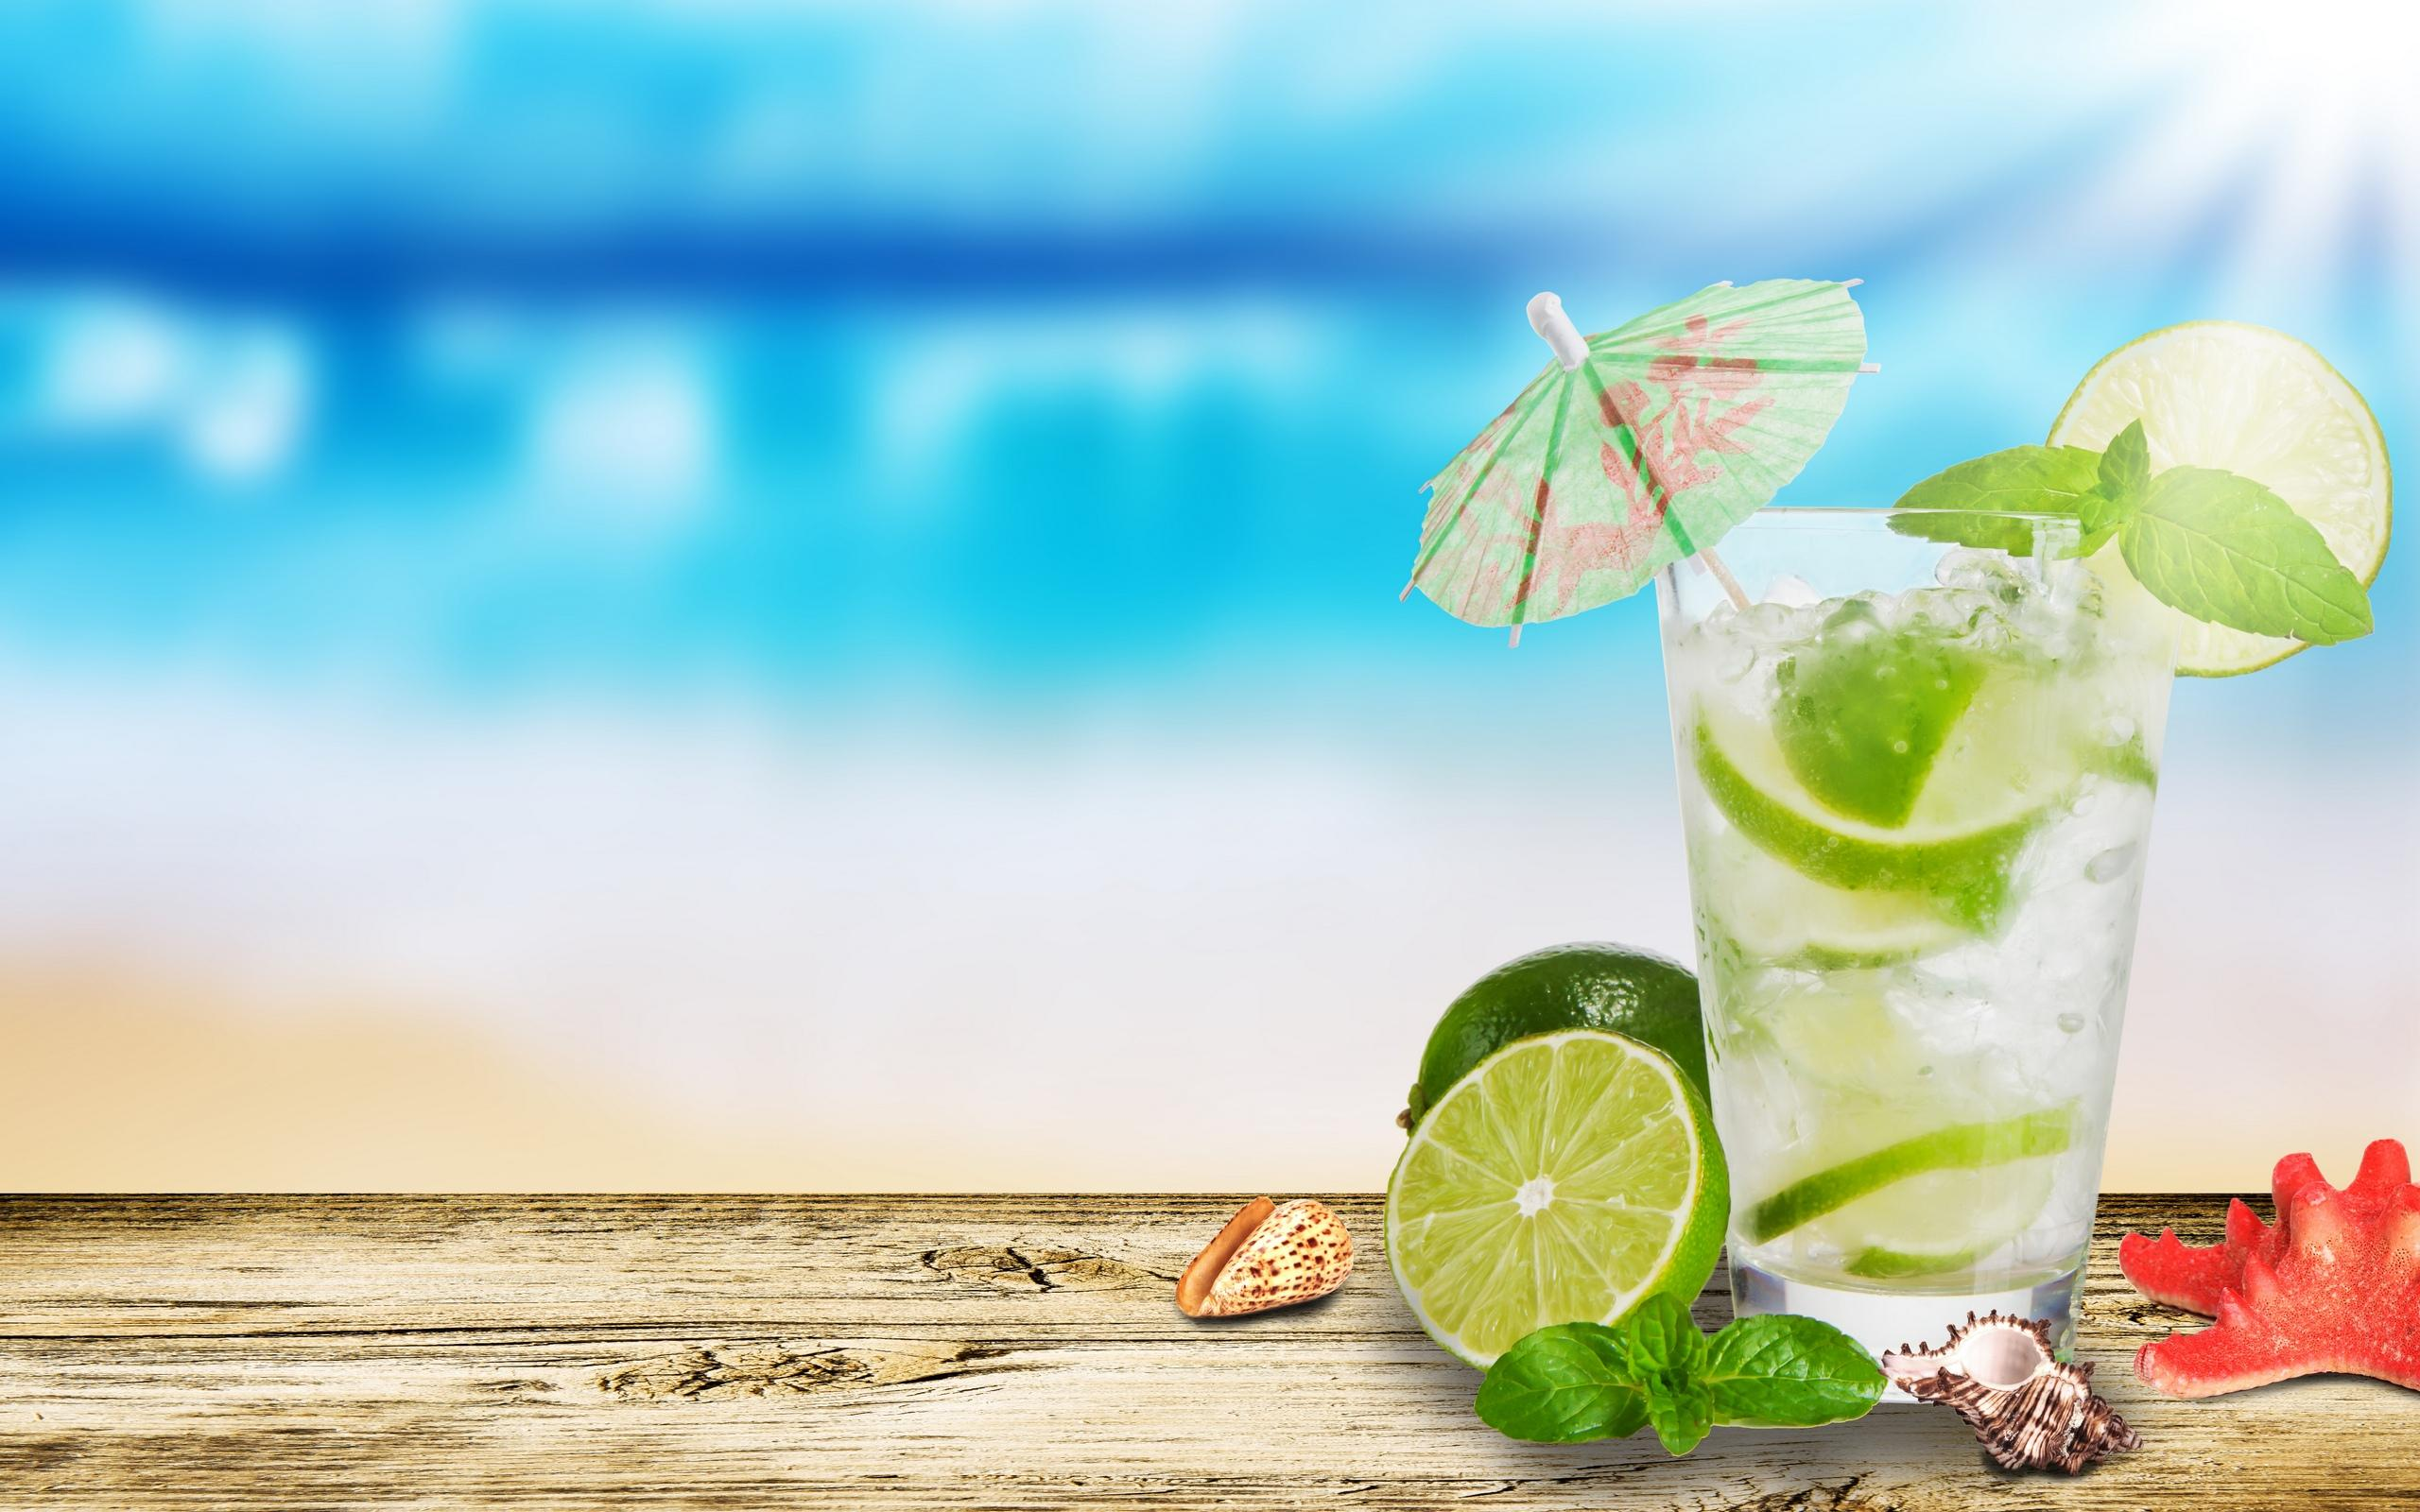 Summer Holiday Wallpapers 2560x1600